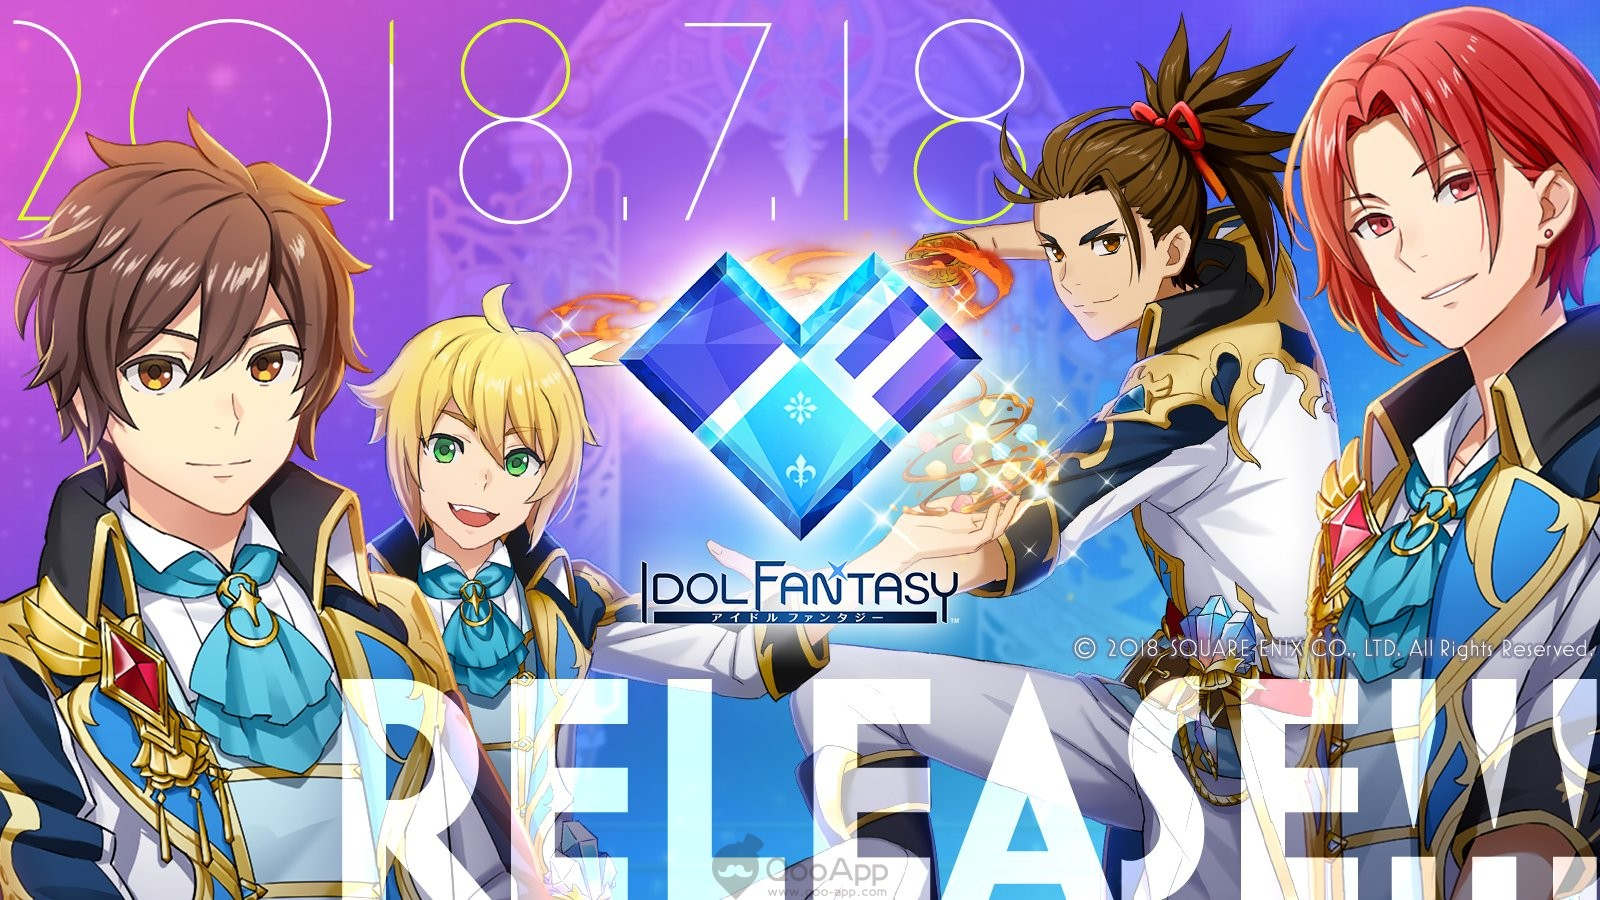 Another idol hell - Square Enix's Idol Fantasy launches on mobile now